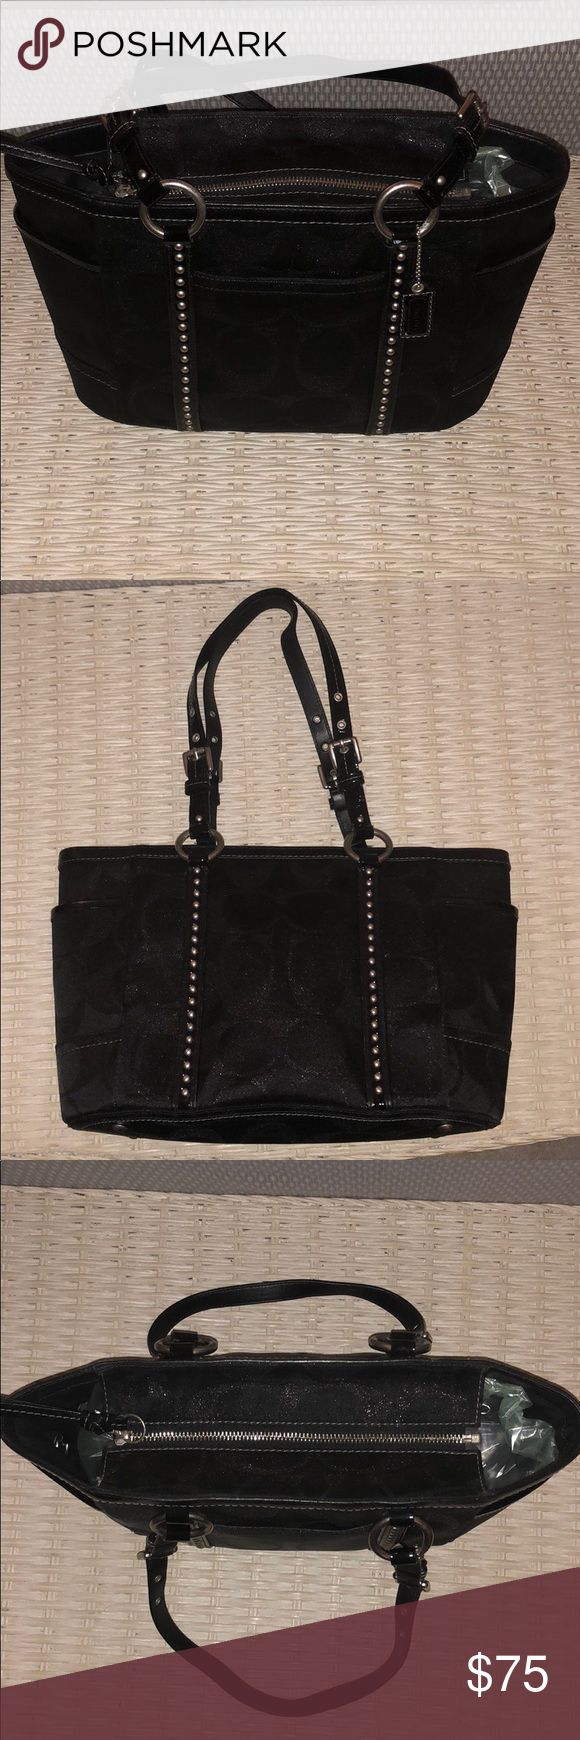 """Gently used Coach Tote Bag Coach F12853 Black Studded Lurex Sig Gallery Tote shoulder bag. Excellent condition COACH BLACK CANVAS SILVER STUDDED PURSE The canvas is a black metallic with C logo, and patent leather accents.  Silver tone hardware.  Two side pockets and an extra back pocket 5""""  Inside is semi-gloss Black  lining with zippered pocket and two slide pockets Coach Bags Shoulder Bags"""